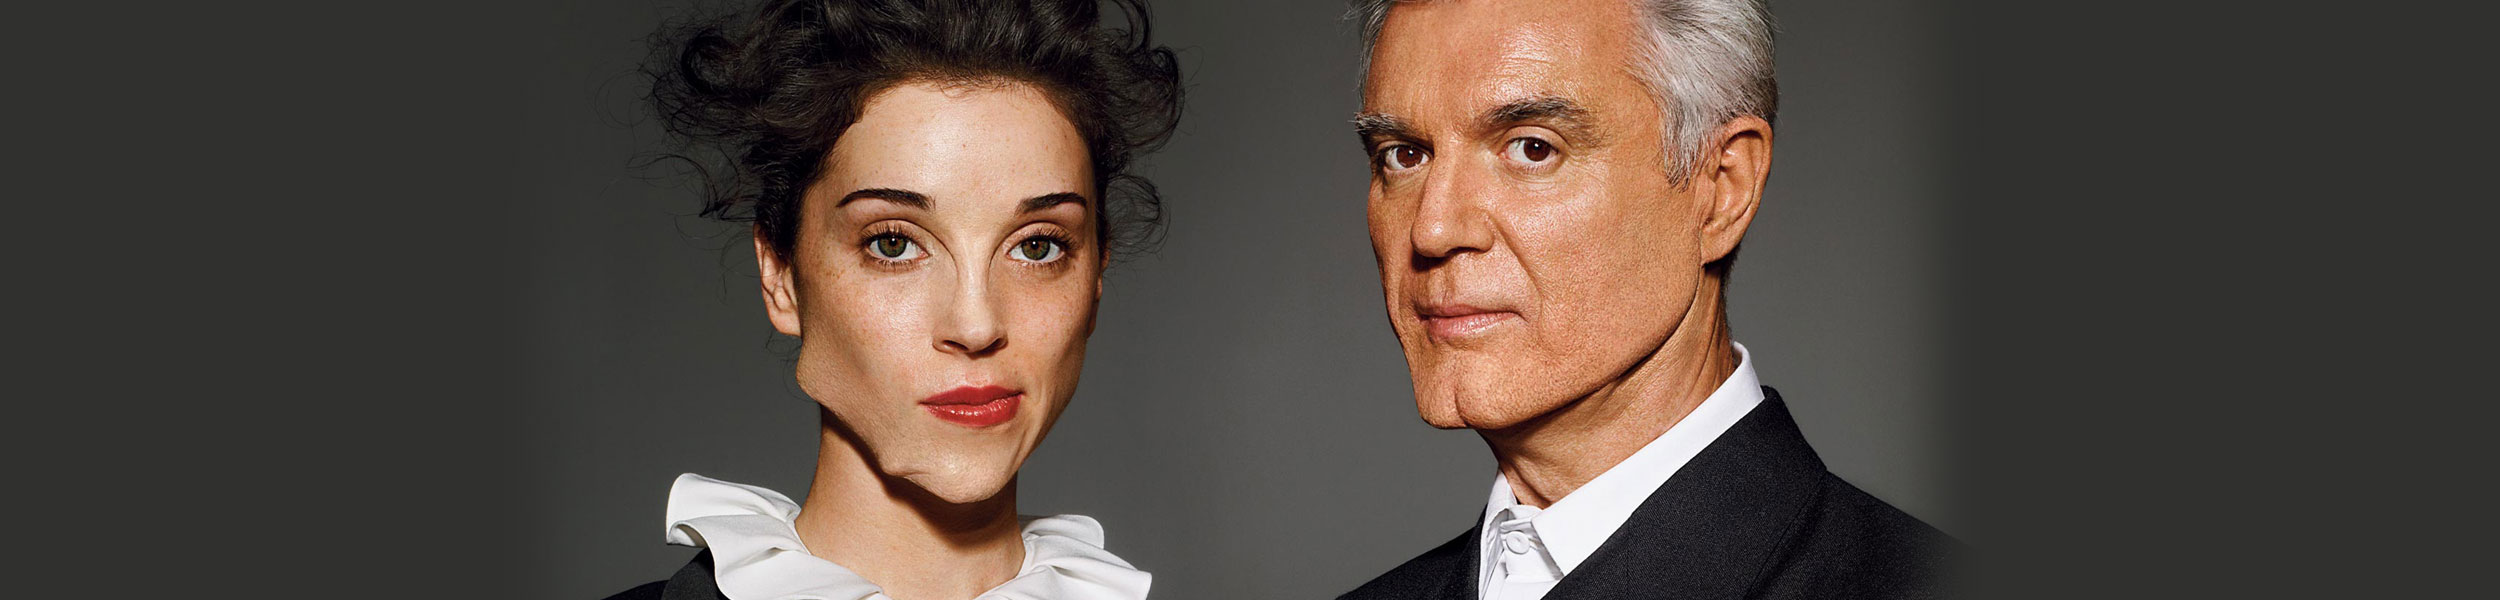 David Byrne & St. Vincent - Watch the New Video for 'Who' by David Byrne & St. Vincent and Stream the Full Album